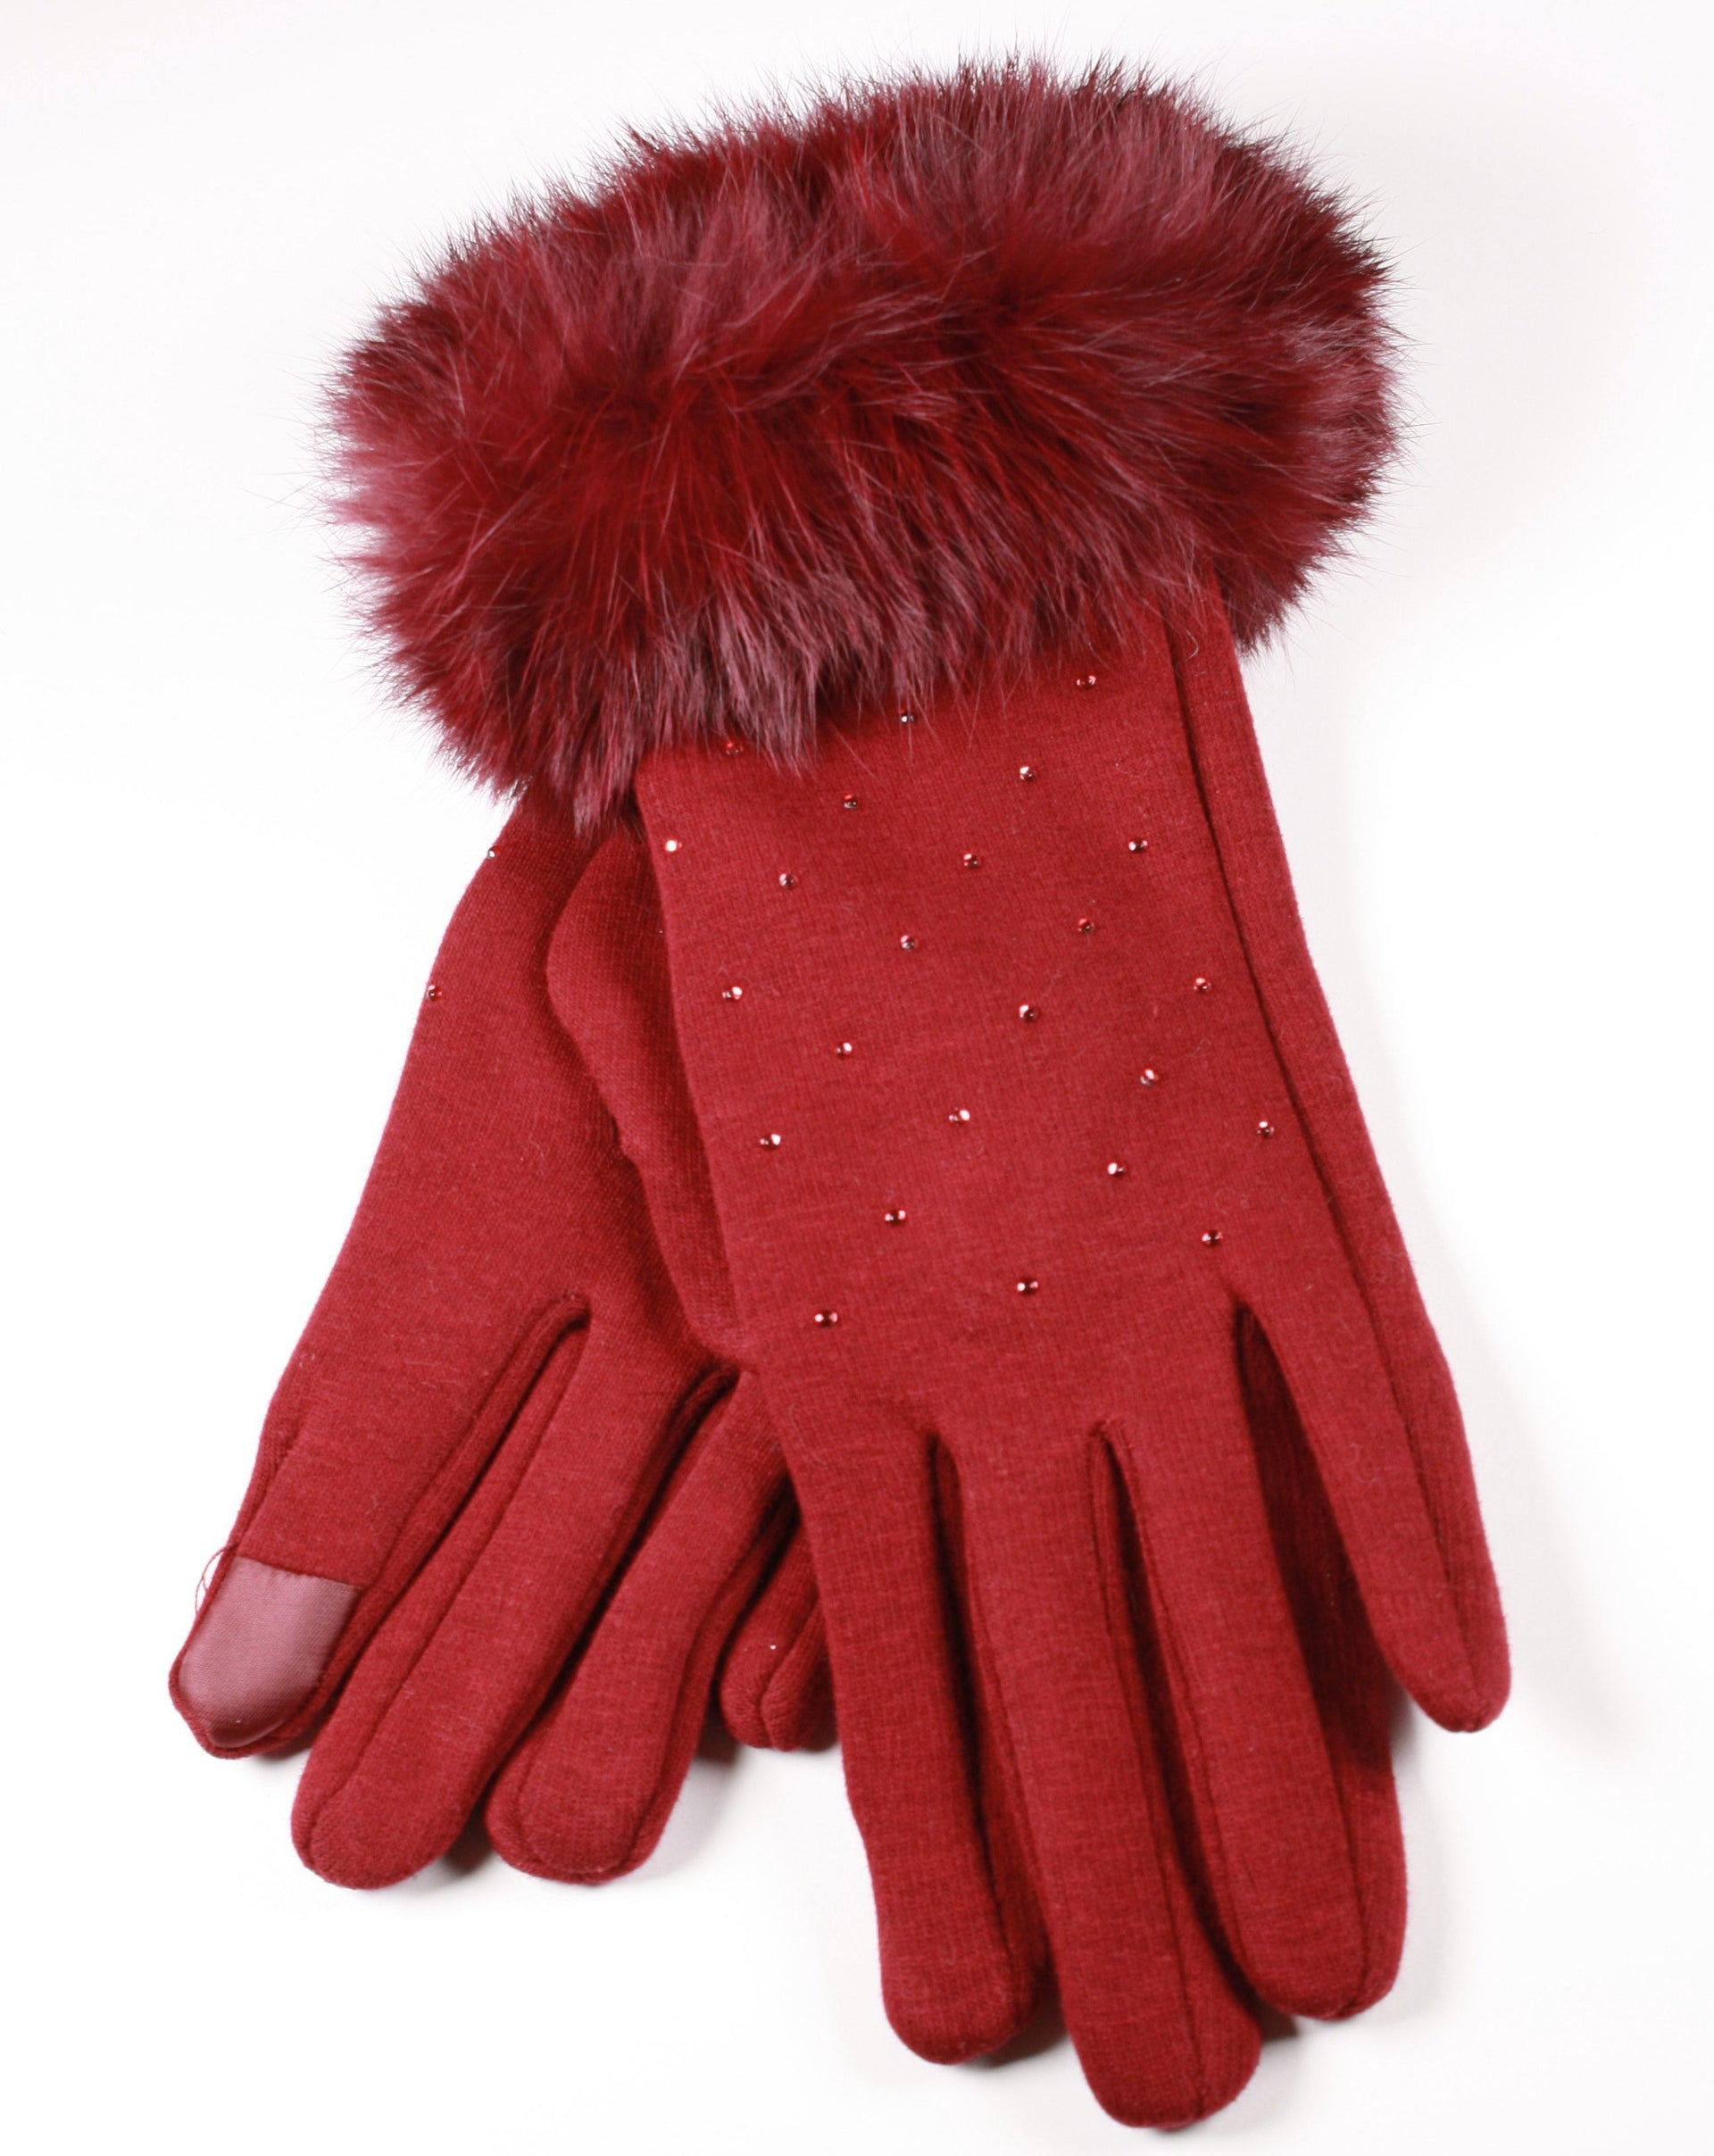 Womens Winter Gloves for Smartphones Touchscreen Buy in Canada at Red Scarf Equestrian